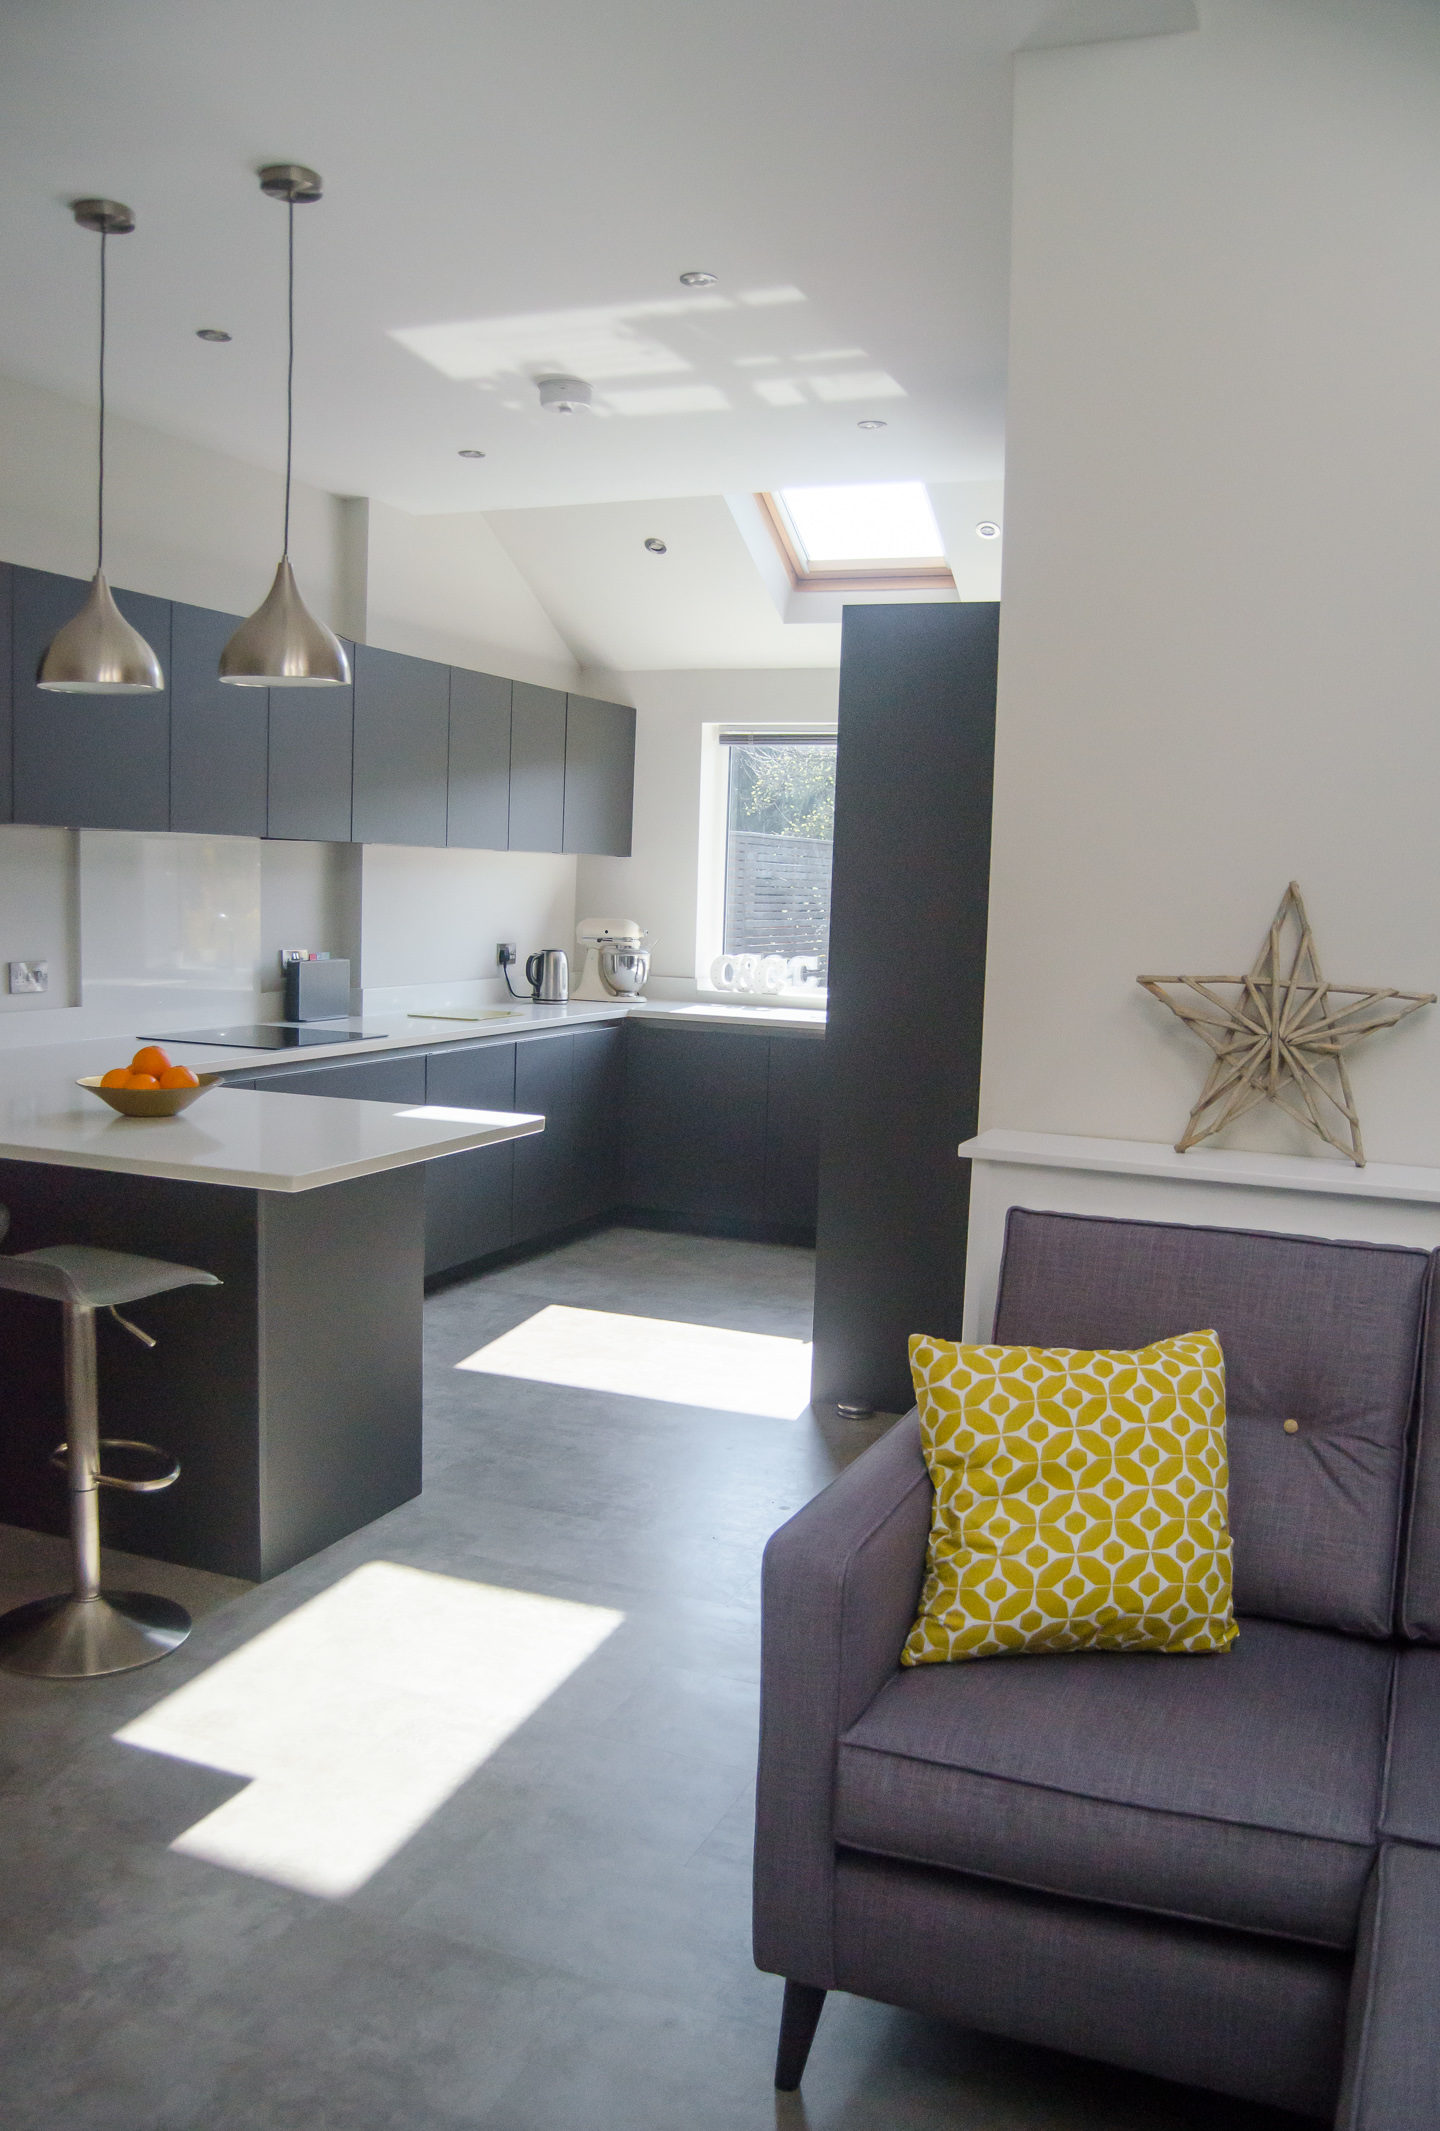 A light and bright modern kitchen extension with VELUX roof windows